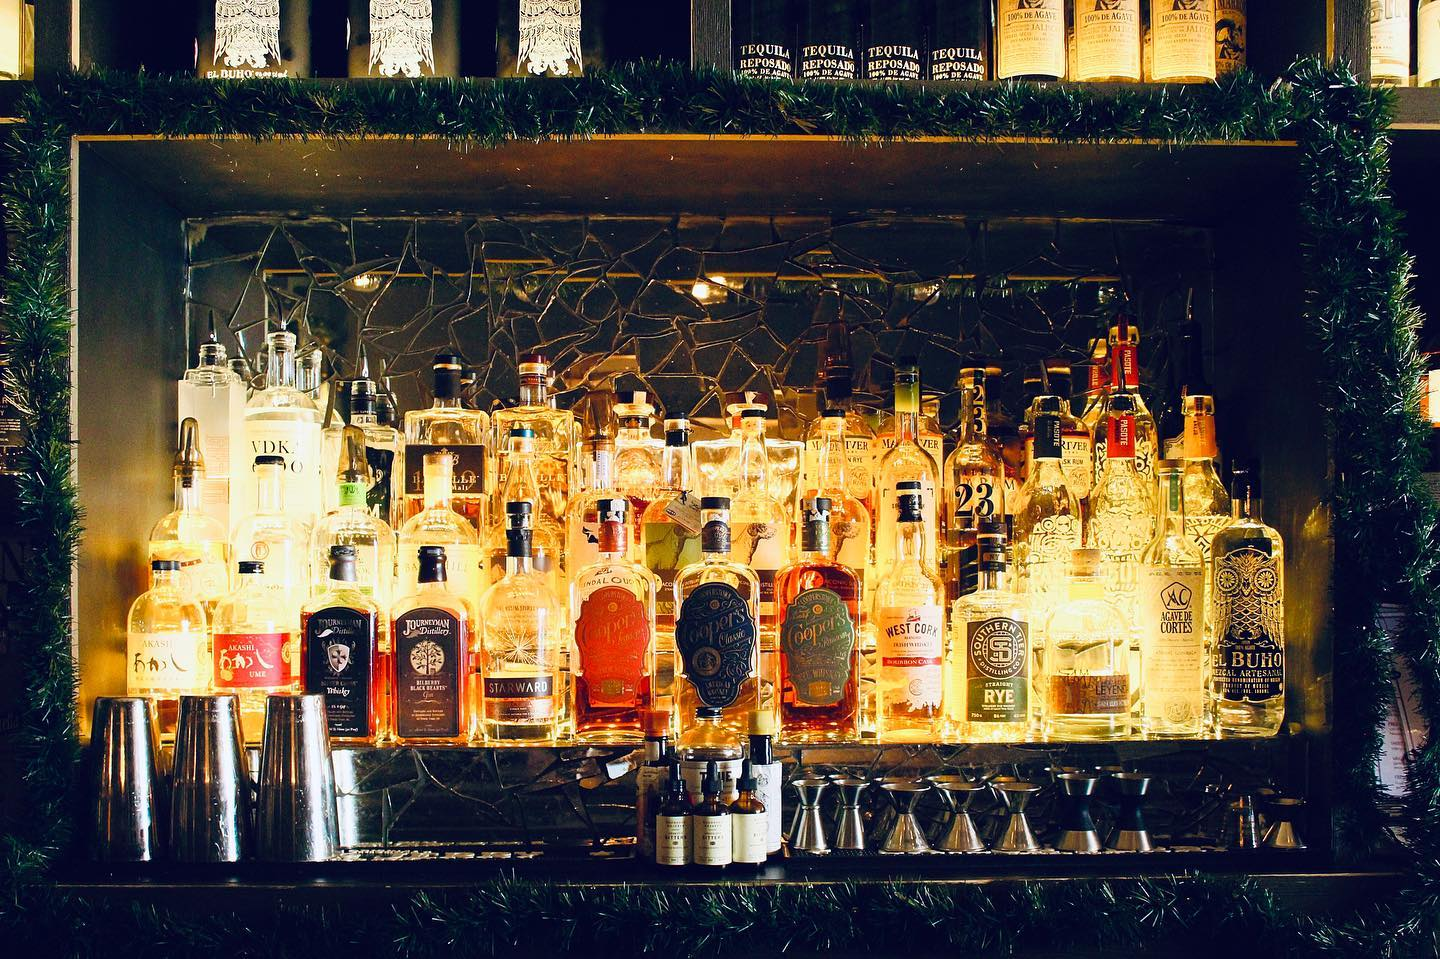 assortment of alcoholic bottles in bar area